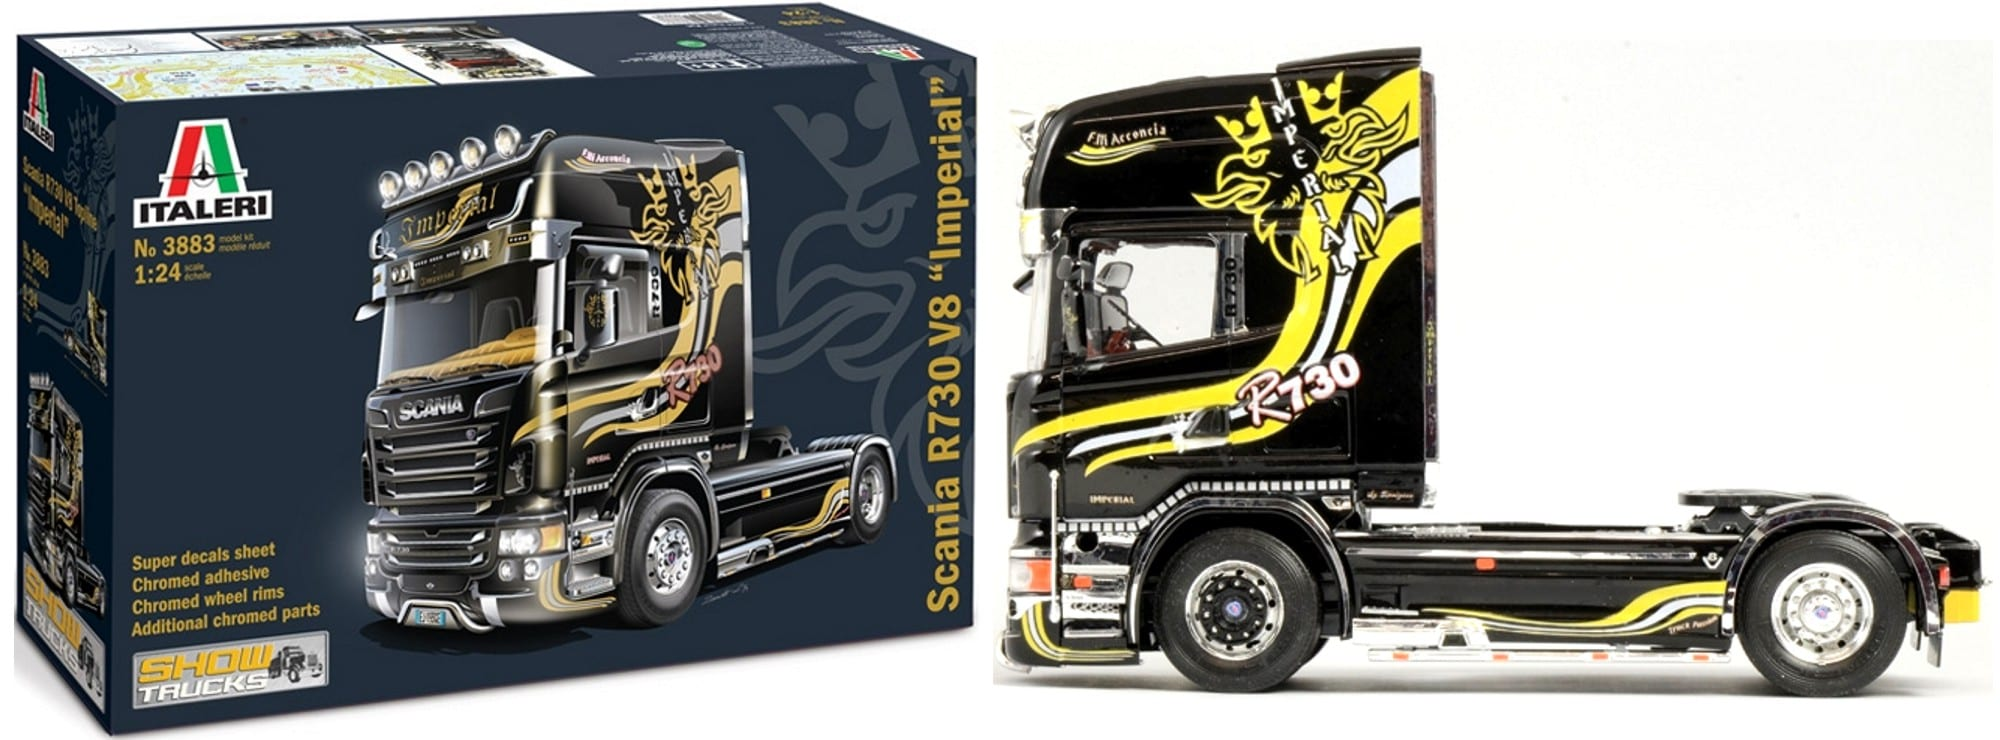 italeri 3883 scania r730 v8 imperial lkw bausatz 1 24. Black Bedroom Furniture Sets. Home Design Ideas